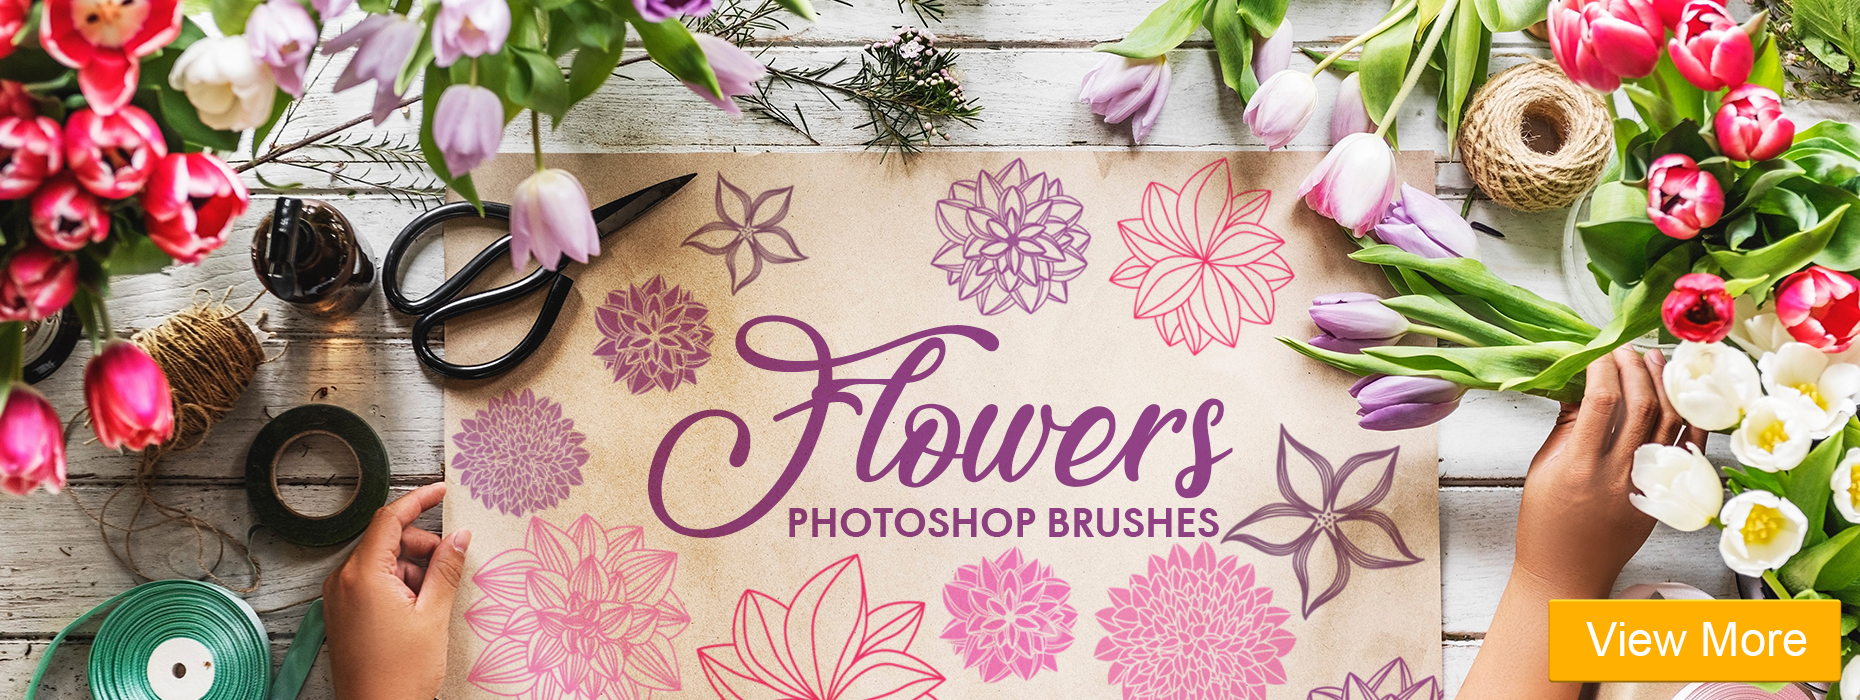 free photoshop circle brushes flowers photoshop brushes banner